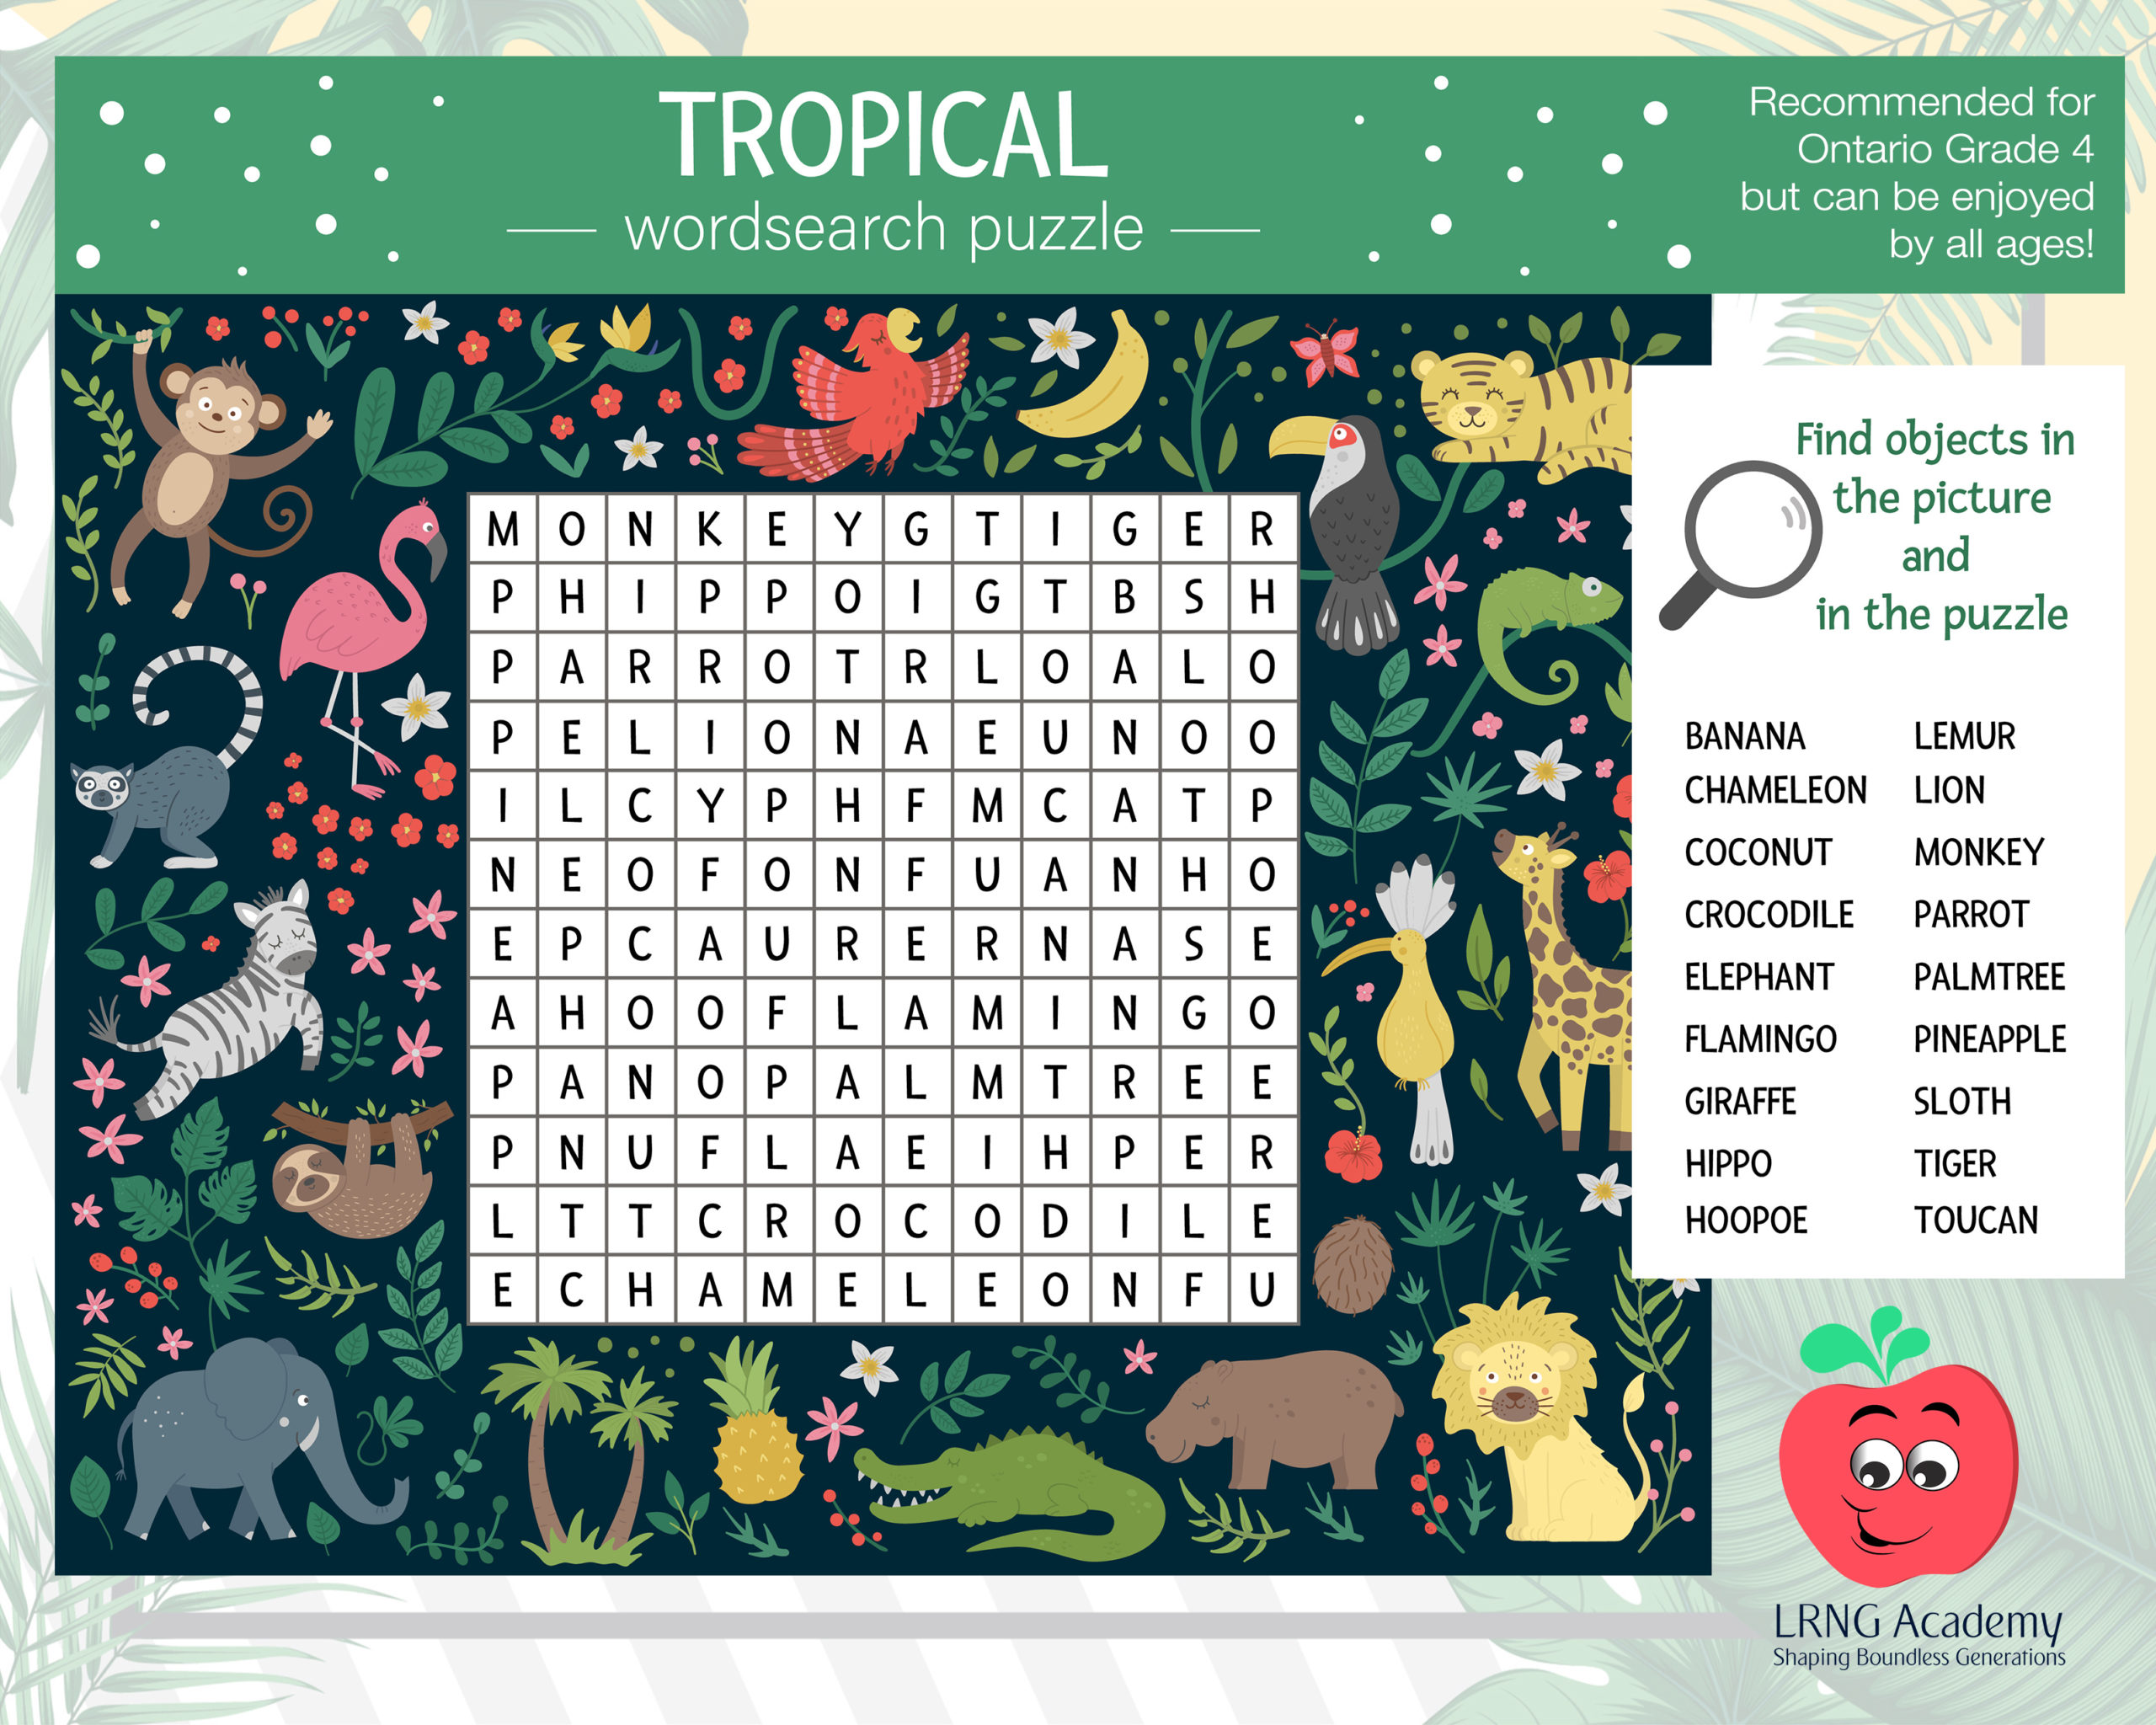 Tropical Wordsearch scaled - Appie Activities - LRNG Academy - Shaping Boundless Generations - Online Tutoring | Online Learning | eLearning | Virtual School | Tutoring Service | Virtual Learning